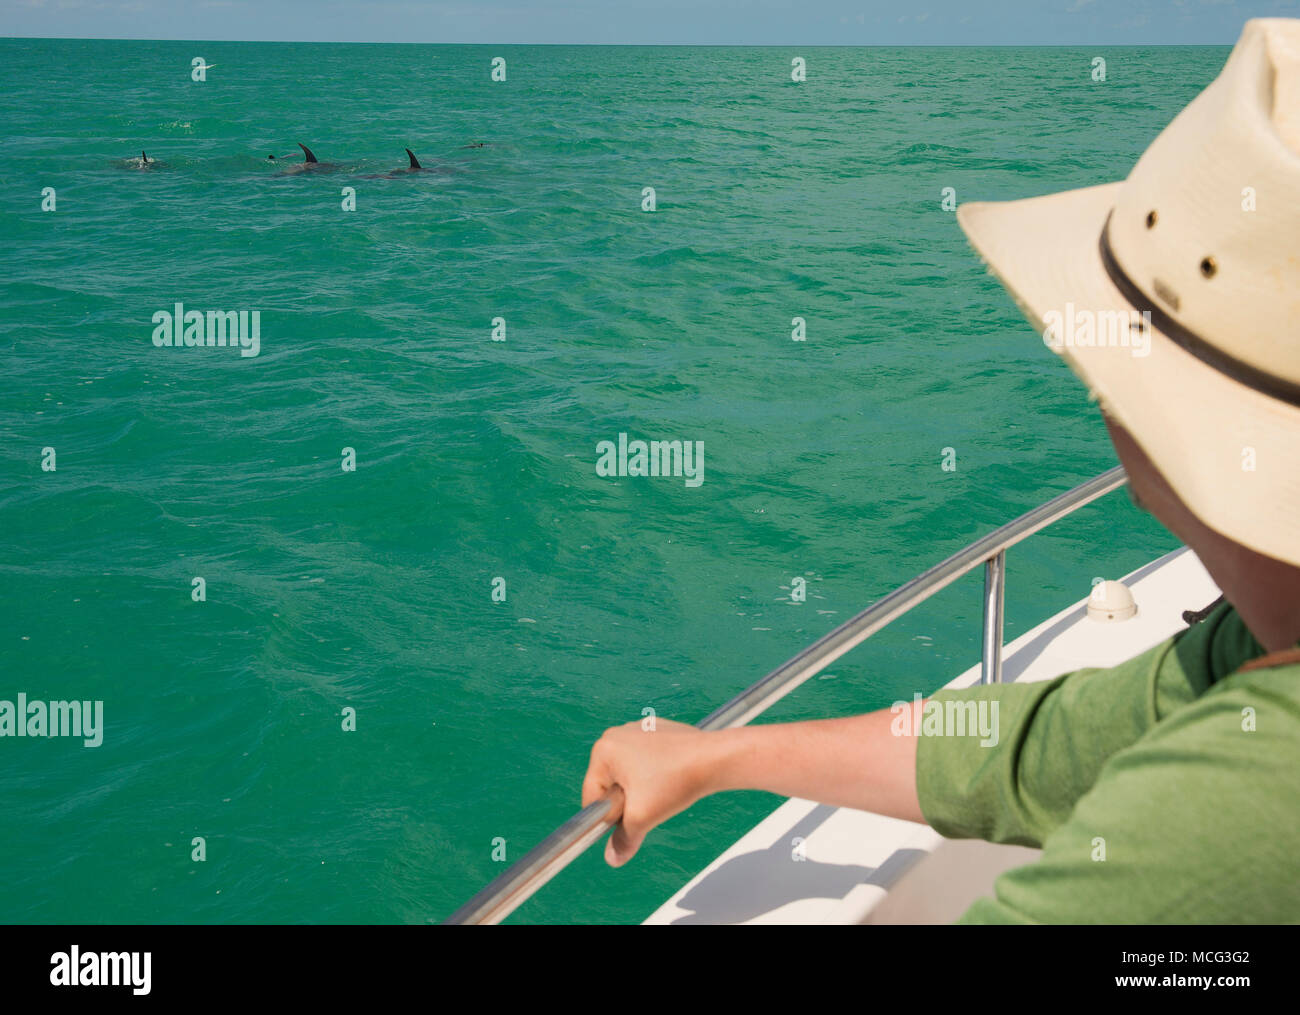 A person dolphin watching in Key West, Florida. - Stock Image